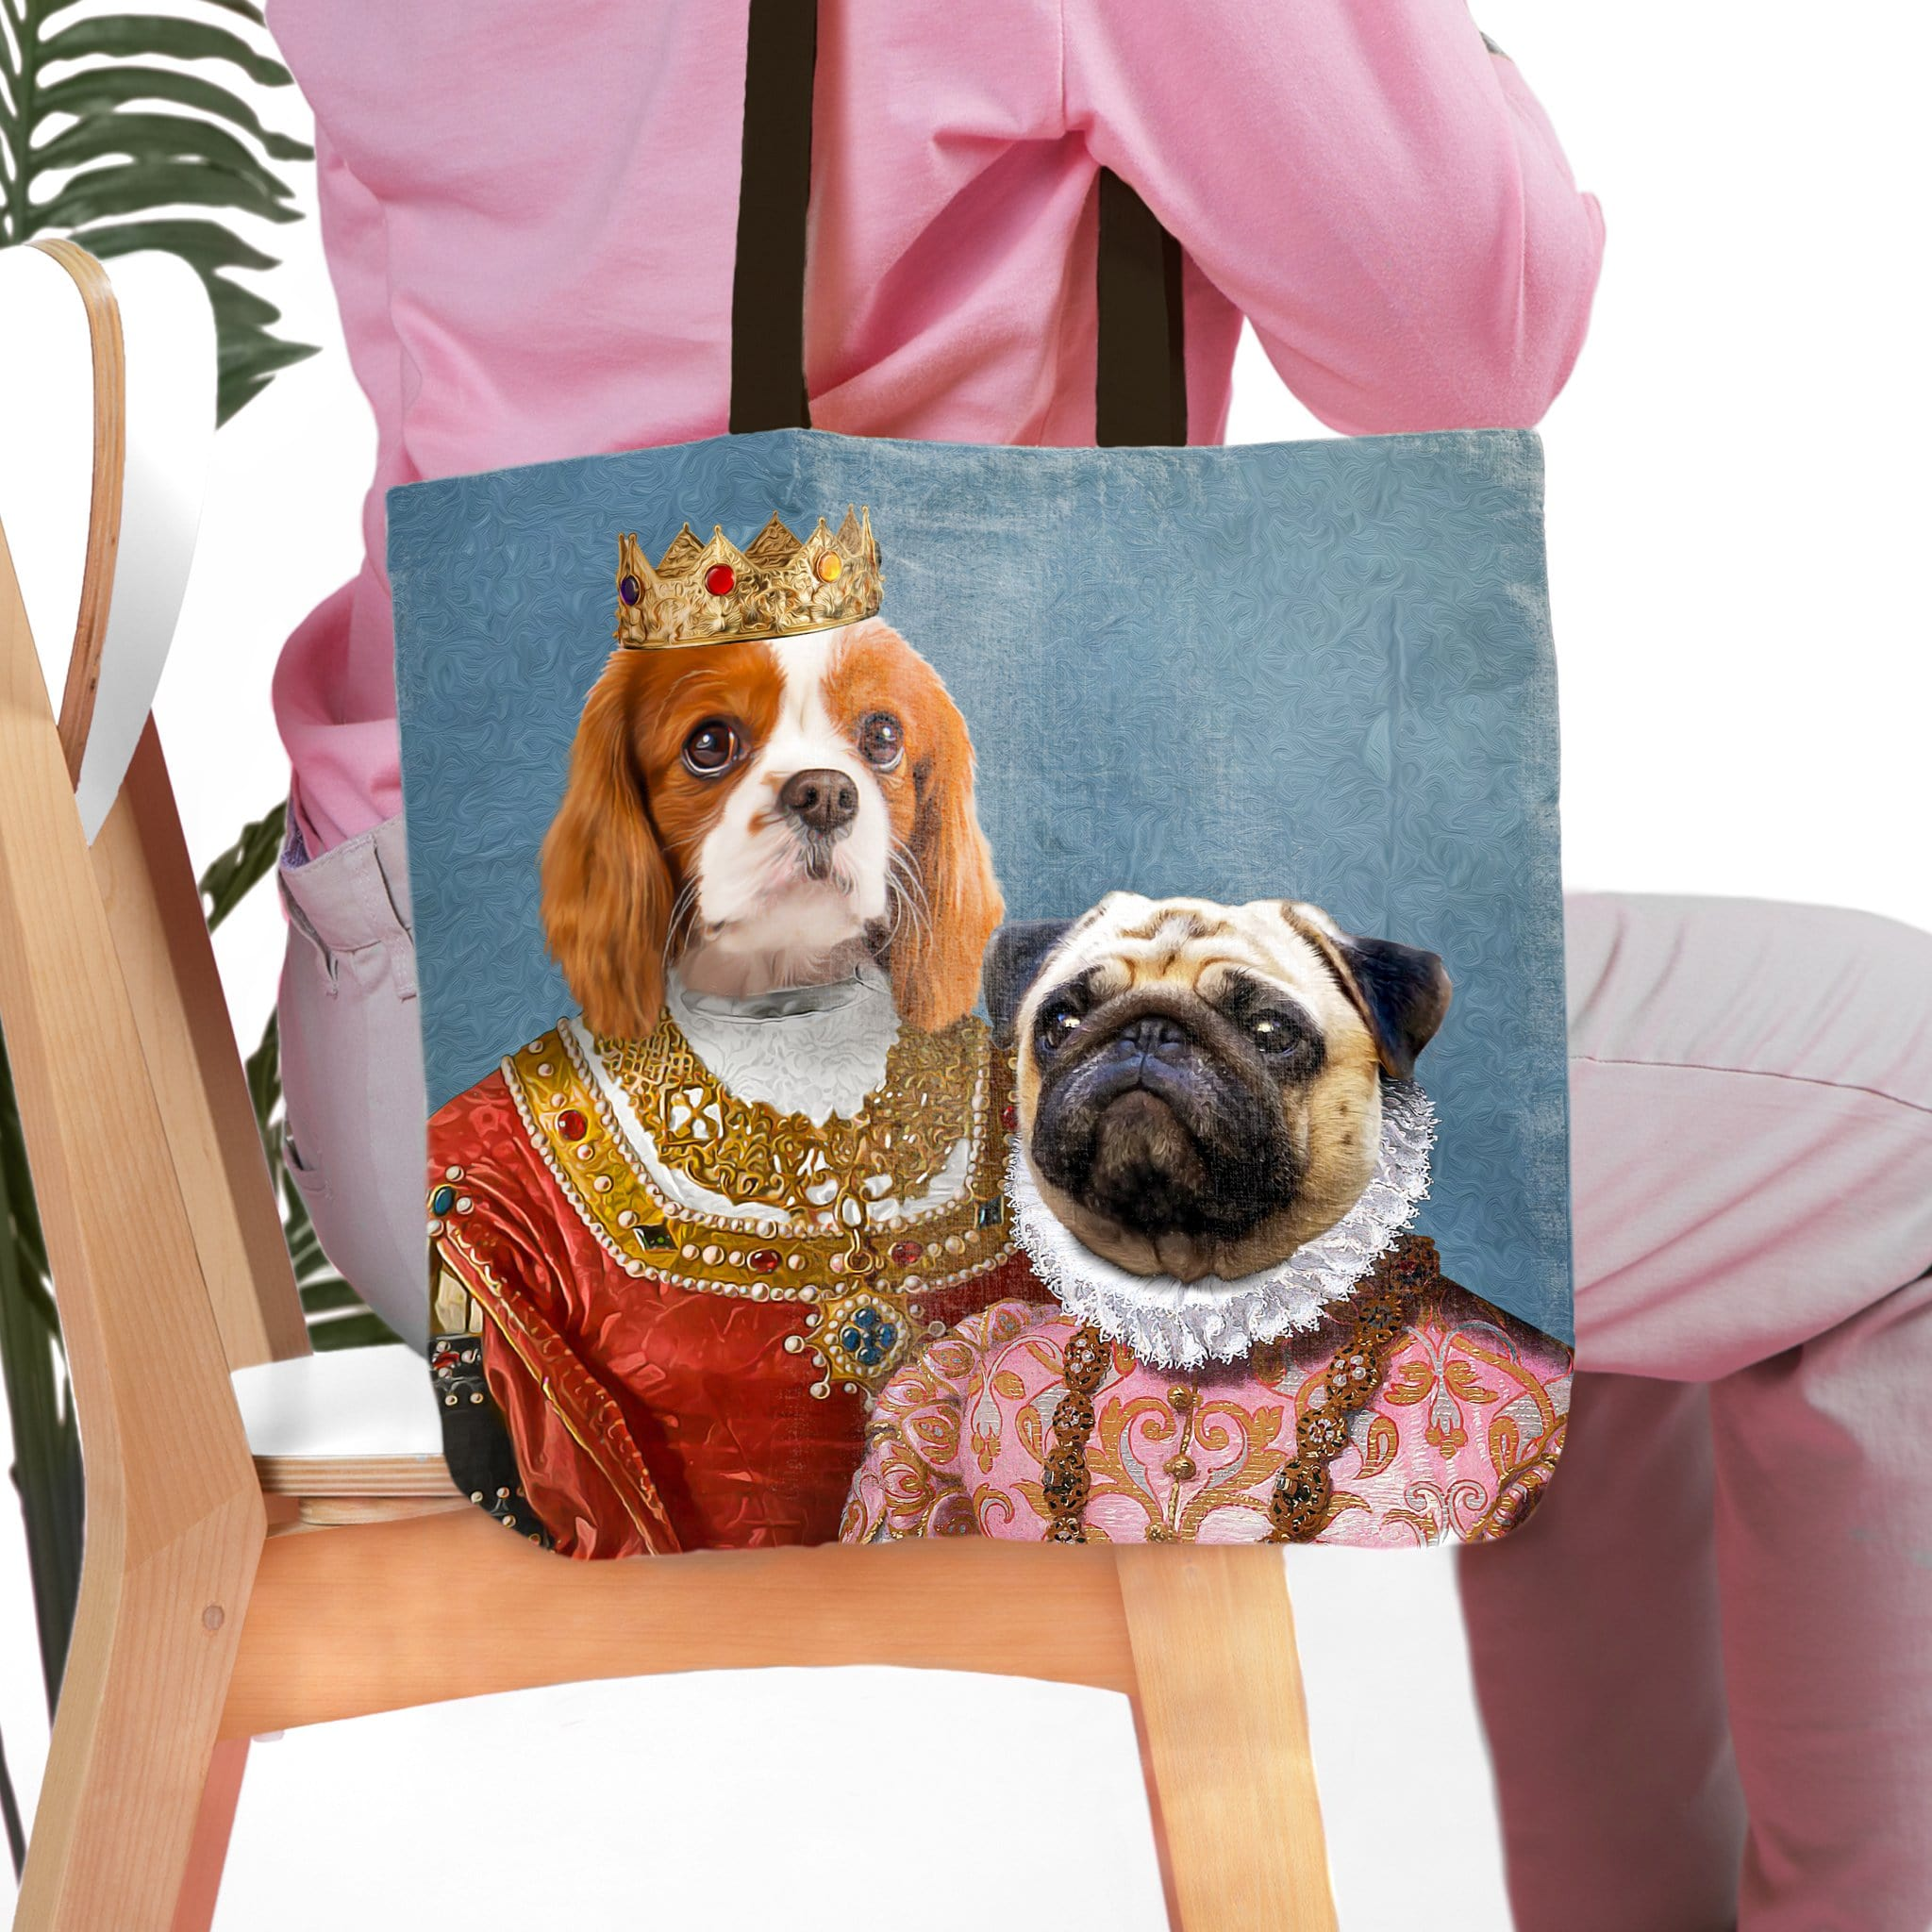 'Queen and Archduchess' Personalized 2 Pet Tote Bag